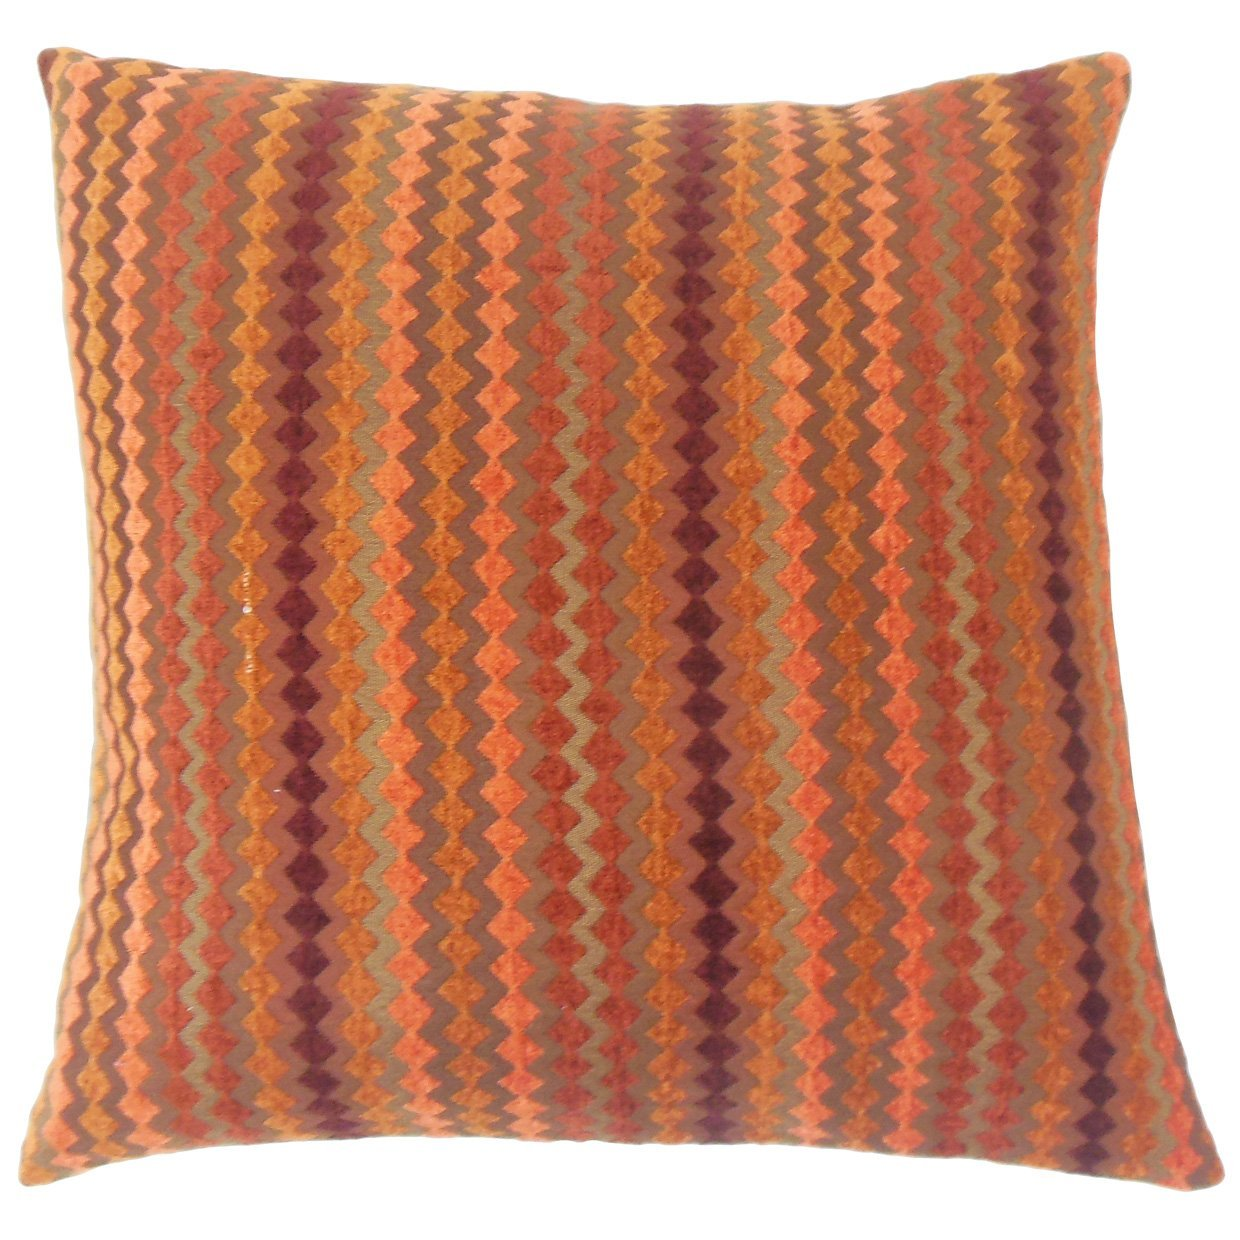 Orange Synthetic Striped Contemporary Throw Pillow Cover